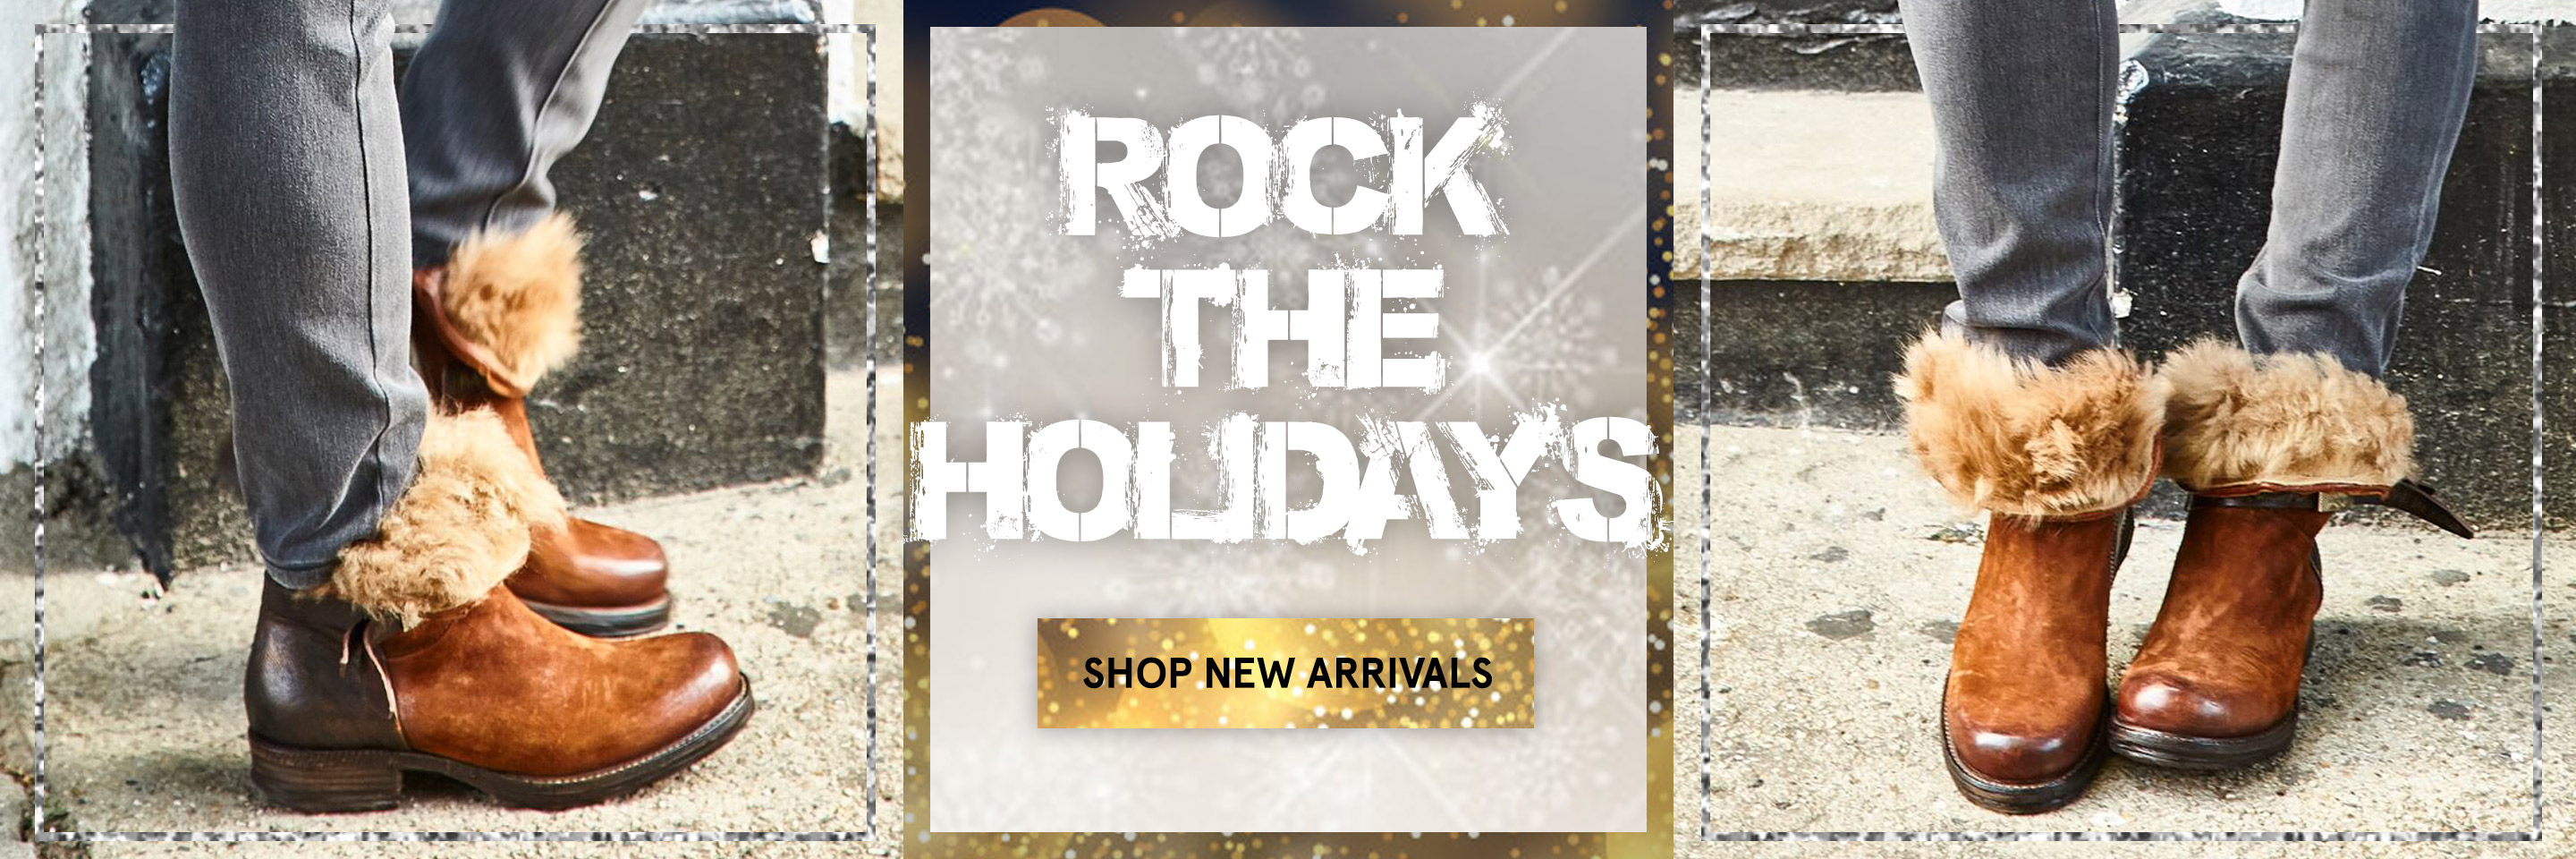 Rock The Holidays!